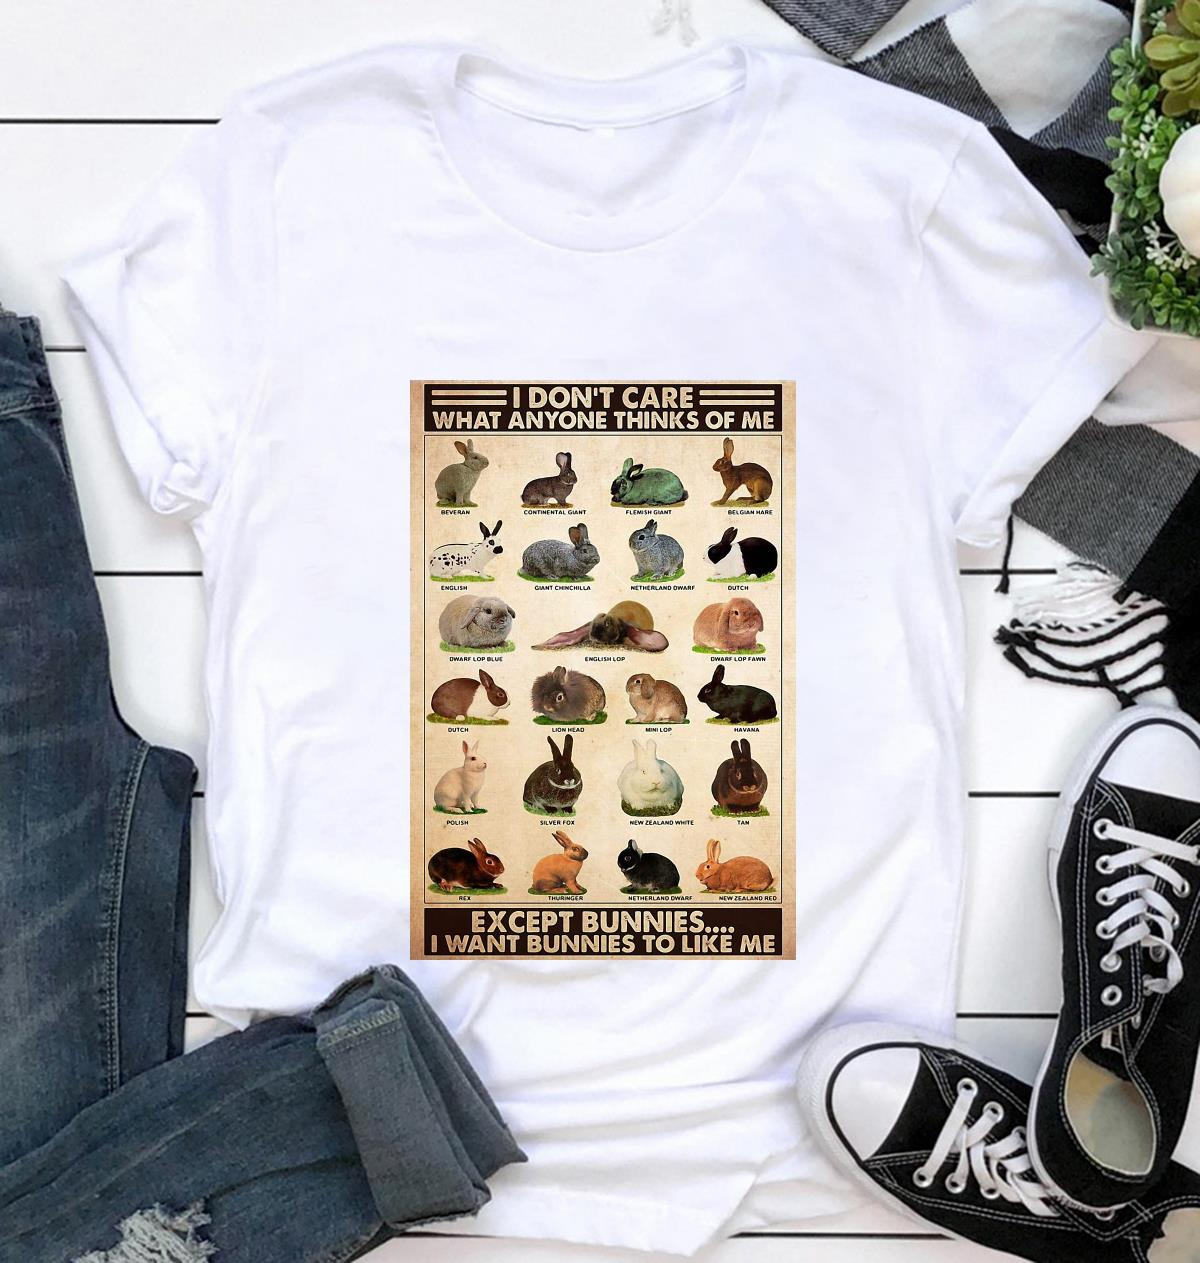 I don't care what anyone thinks of me except bunnies poster t-shirt